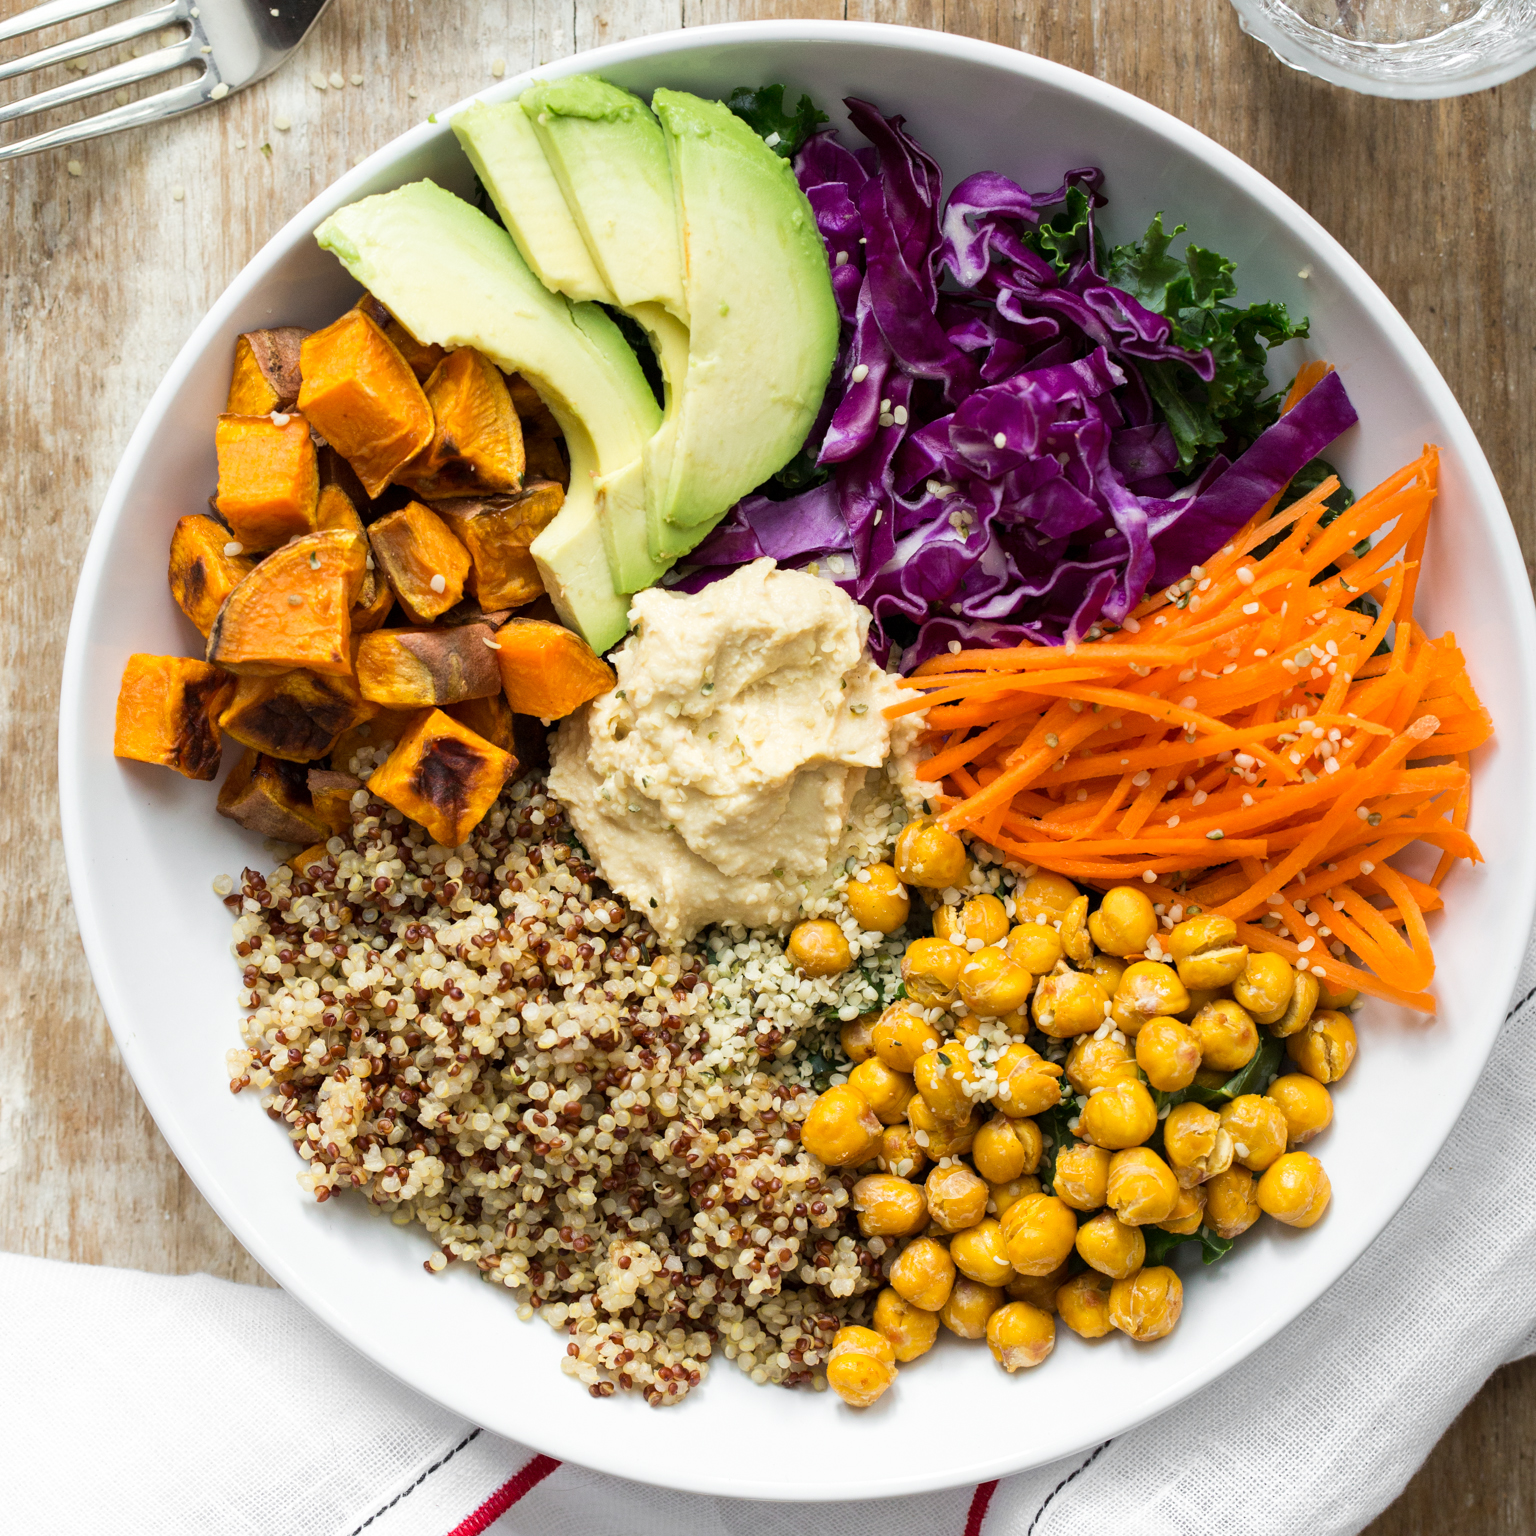 Vegan Diet Yes Or NO: The Pros & Cons Of Going Vegan